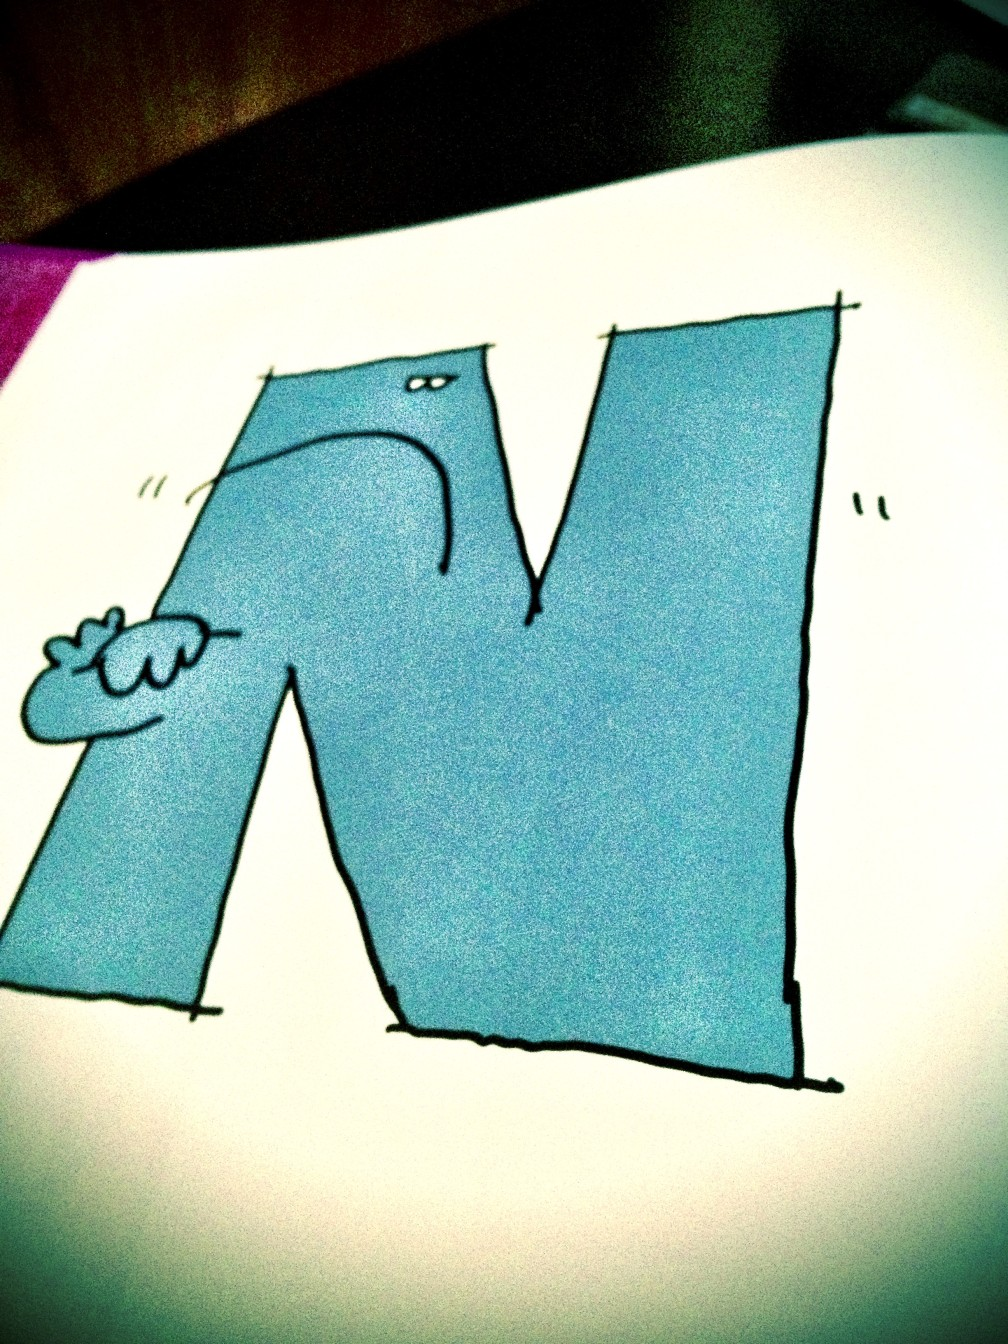 N is for No